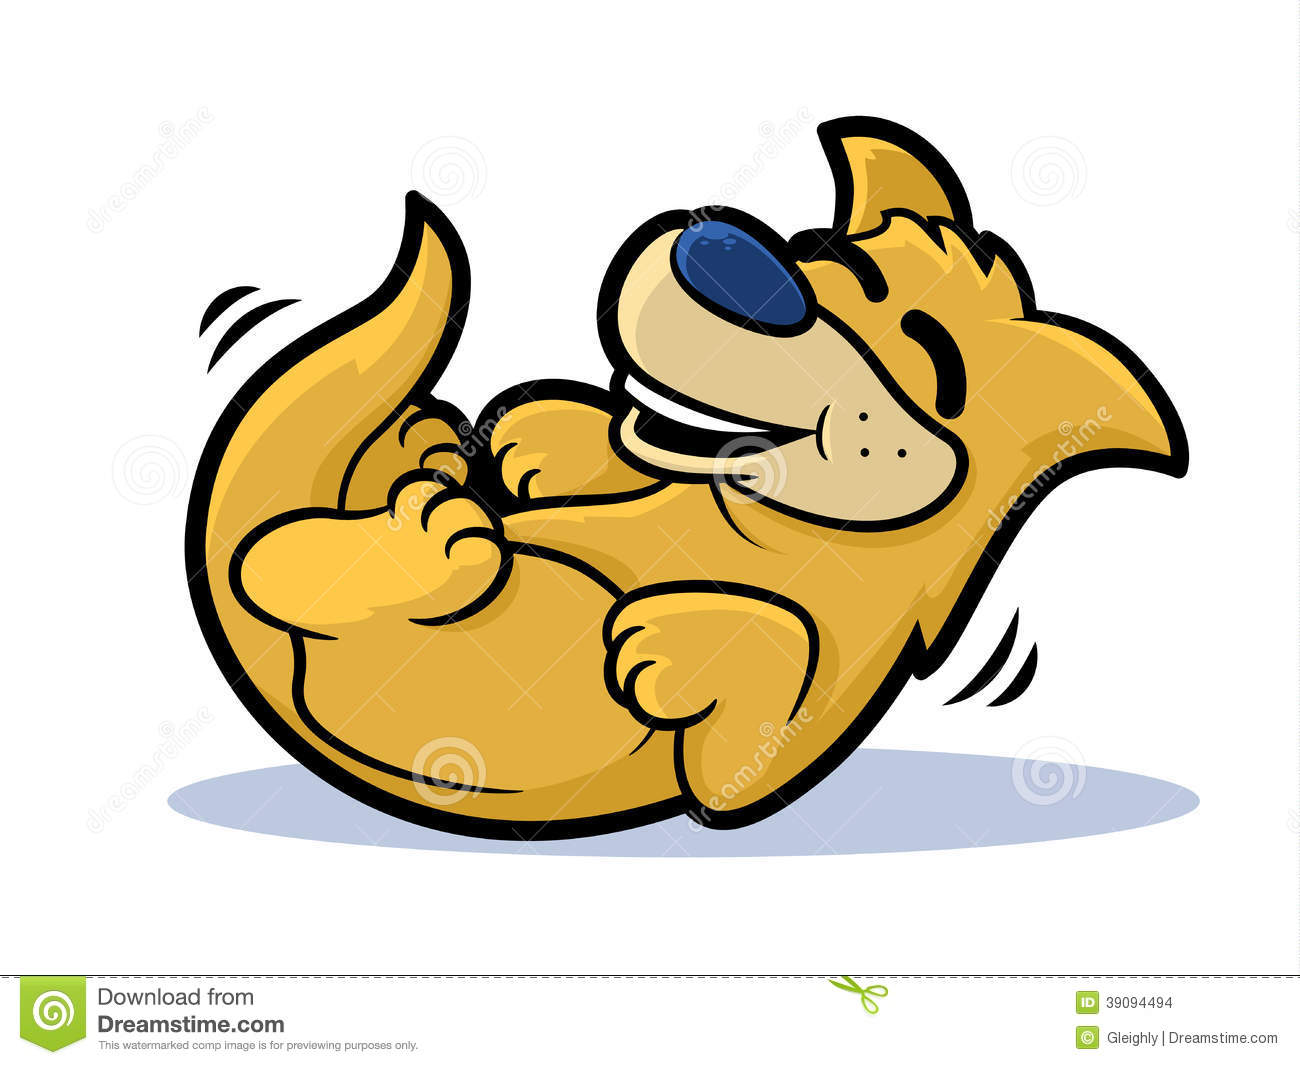 Cartoon dog on his back rolling and smiling.